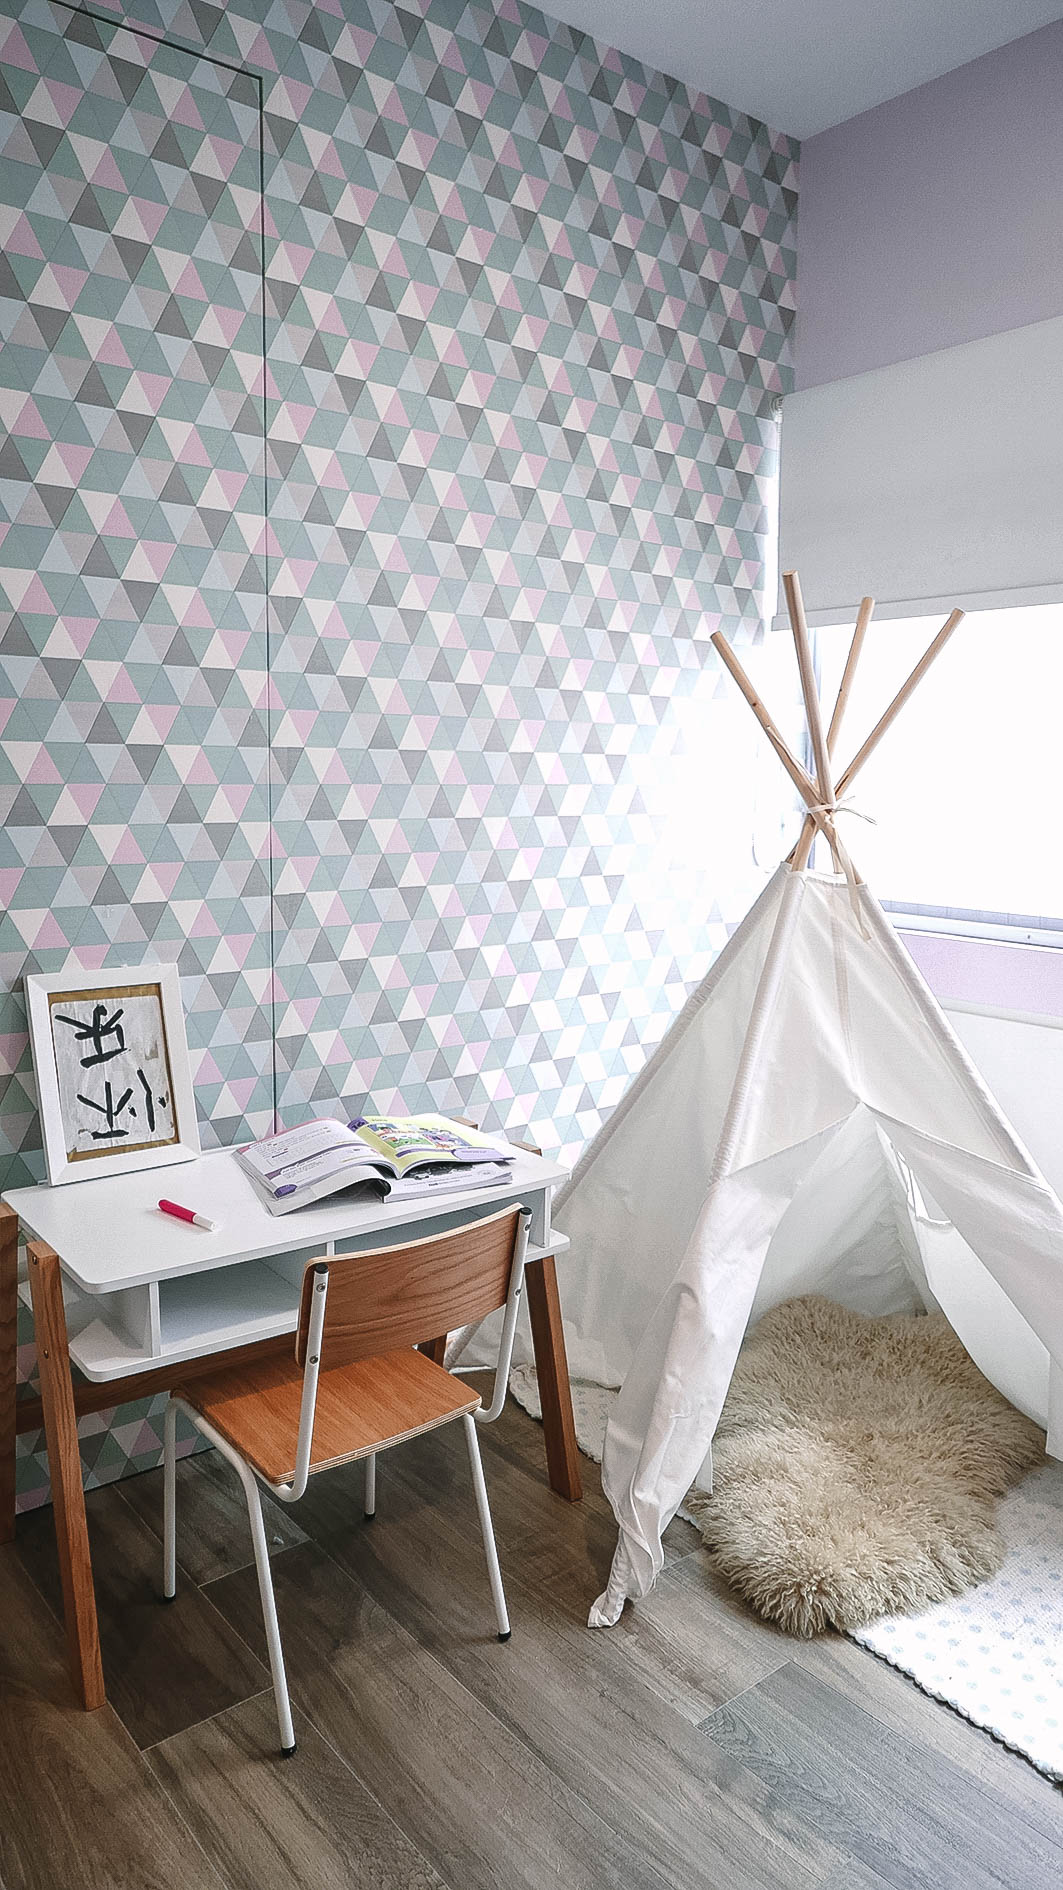 Cool Kids Room Teepee Play Area